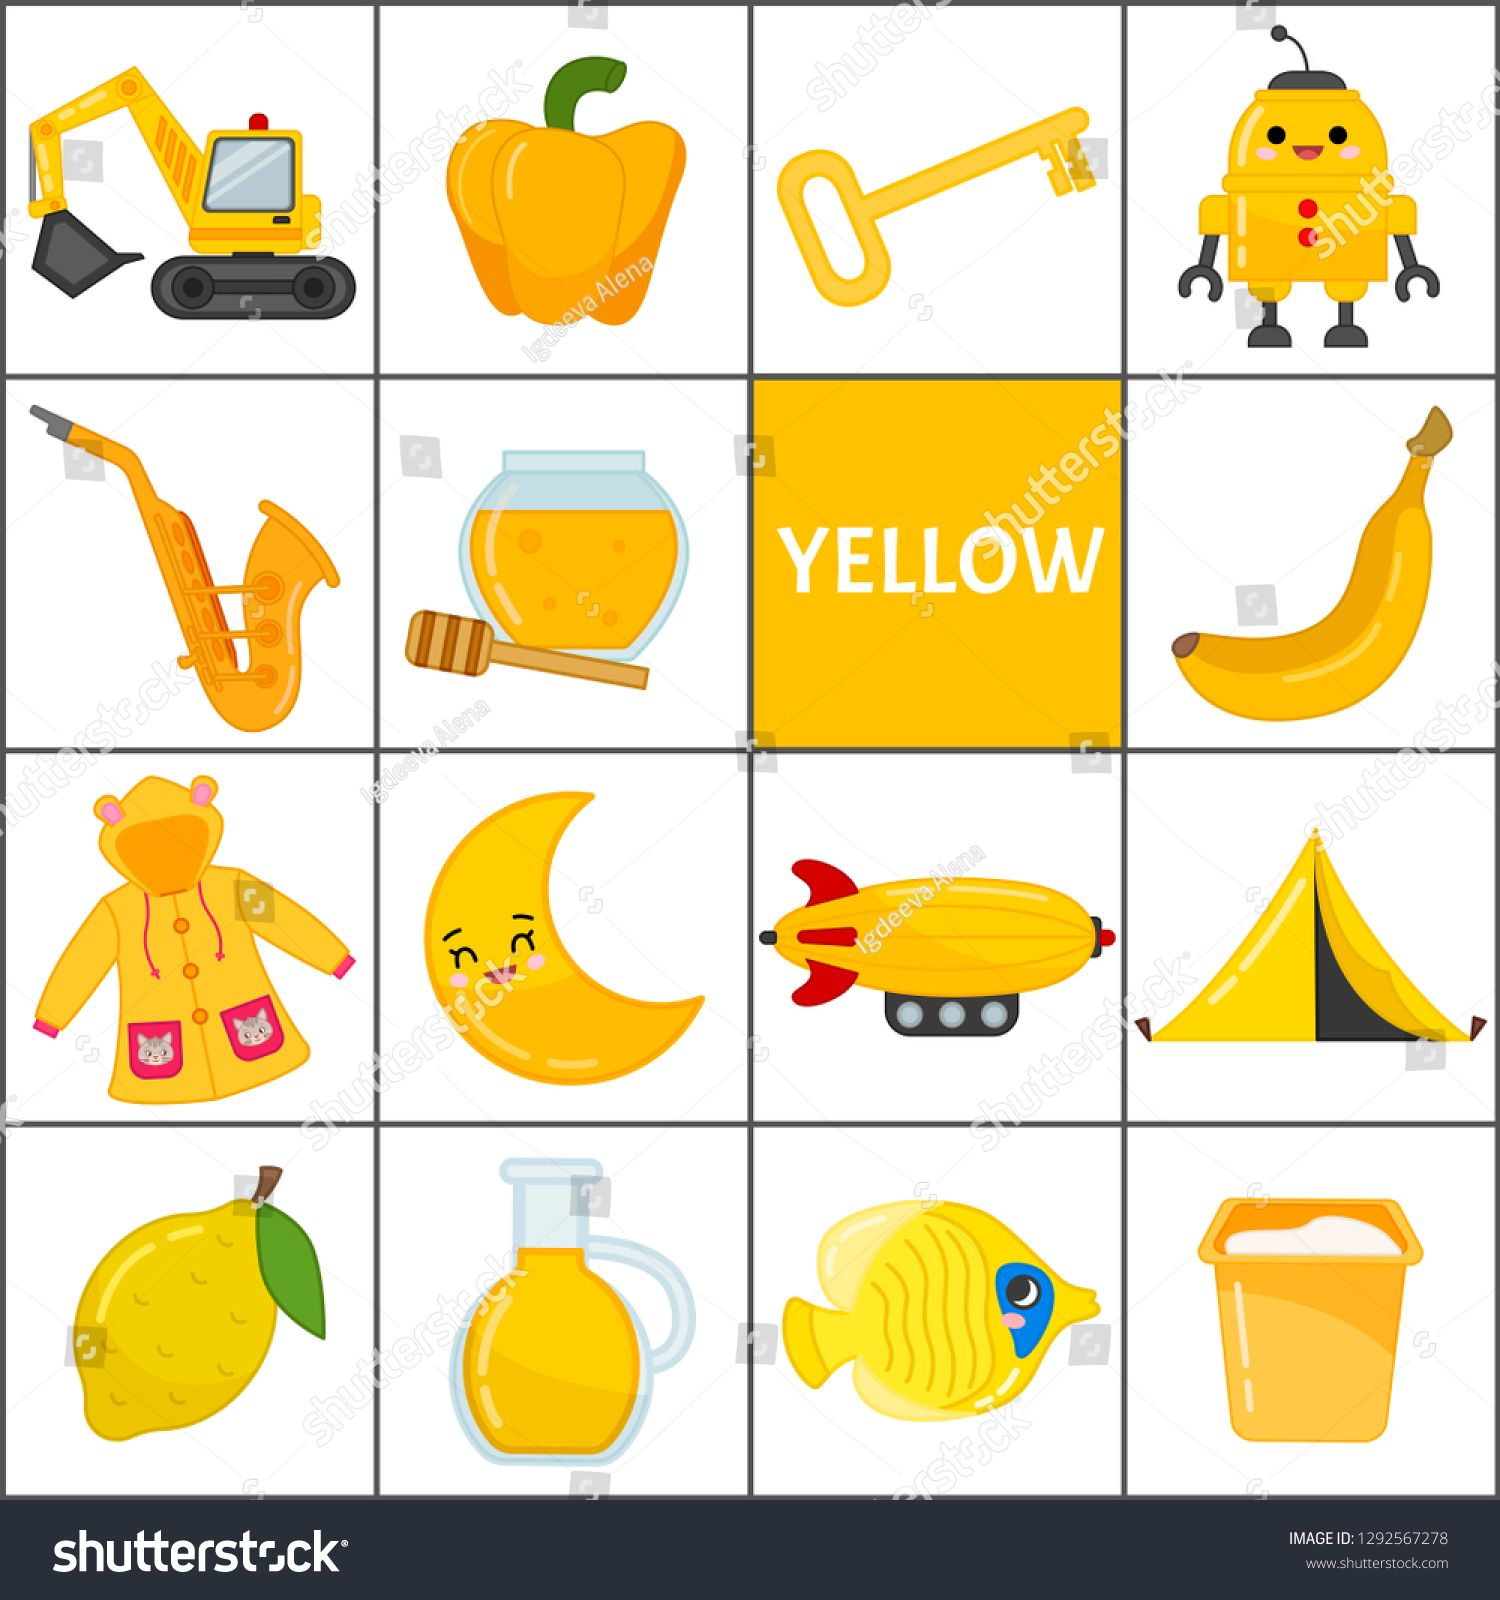 Learn The Primary Colors Yellow Different Objects In Yellow Color Educational Material For Children And Toddlers Teaching Colors Yellow Color Yellow Crafts [ 1600 x 1500 Pixel ]